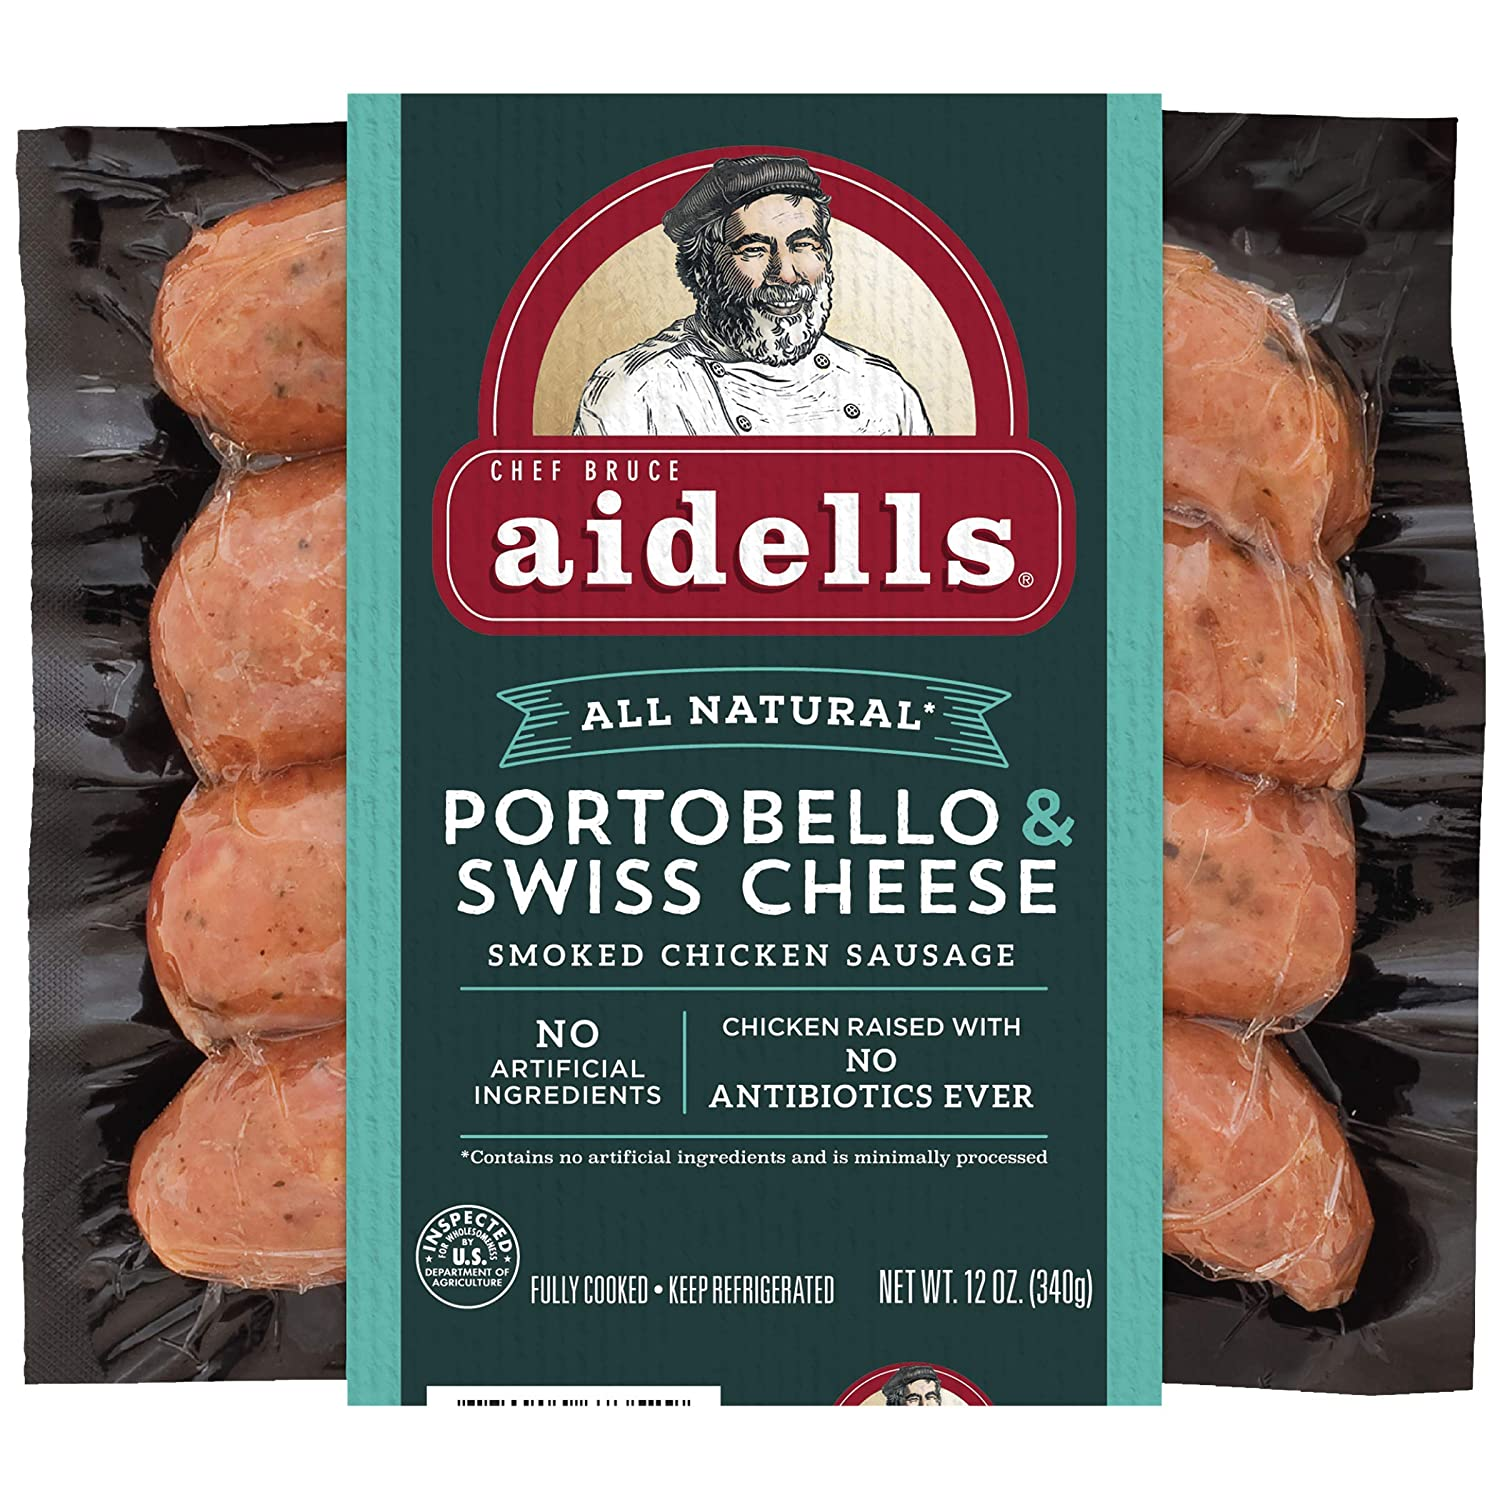 Aidells Smoked Chicken Sausage, Portobello & Swiss Cheese, 12 oz. (4 Fully Cooked Links)